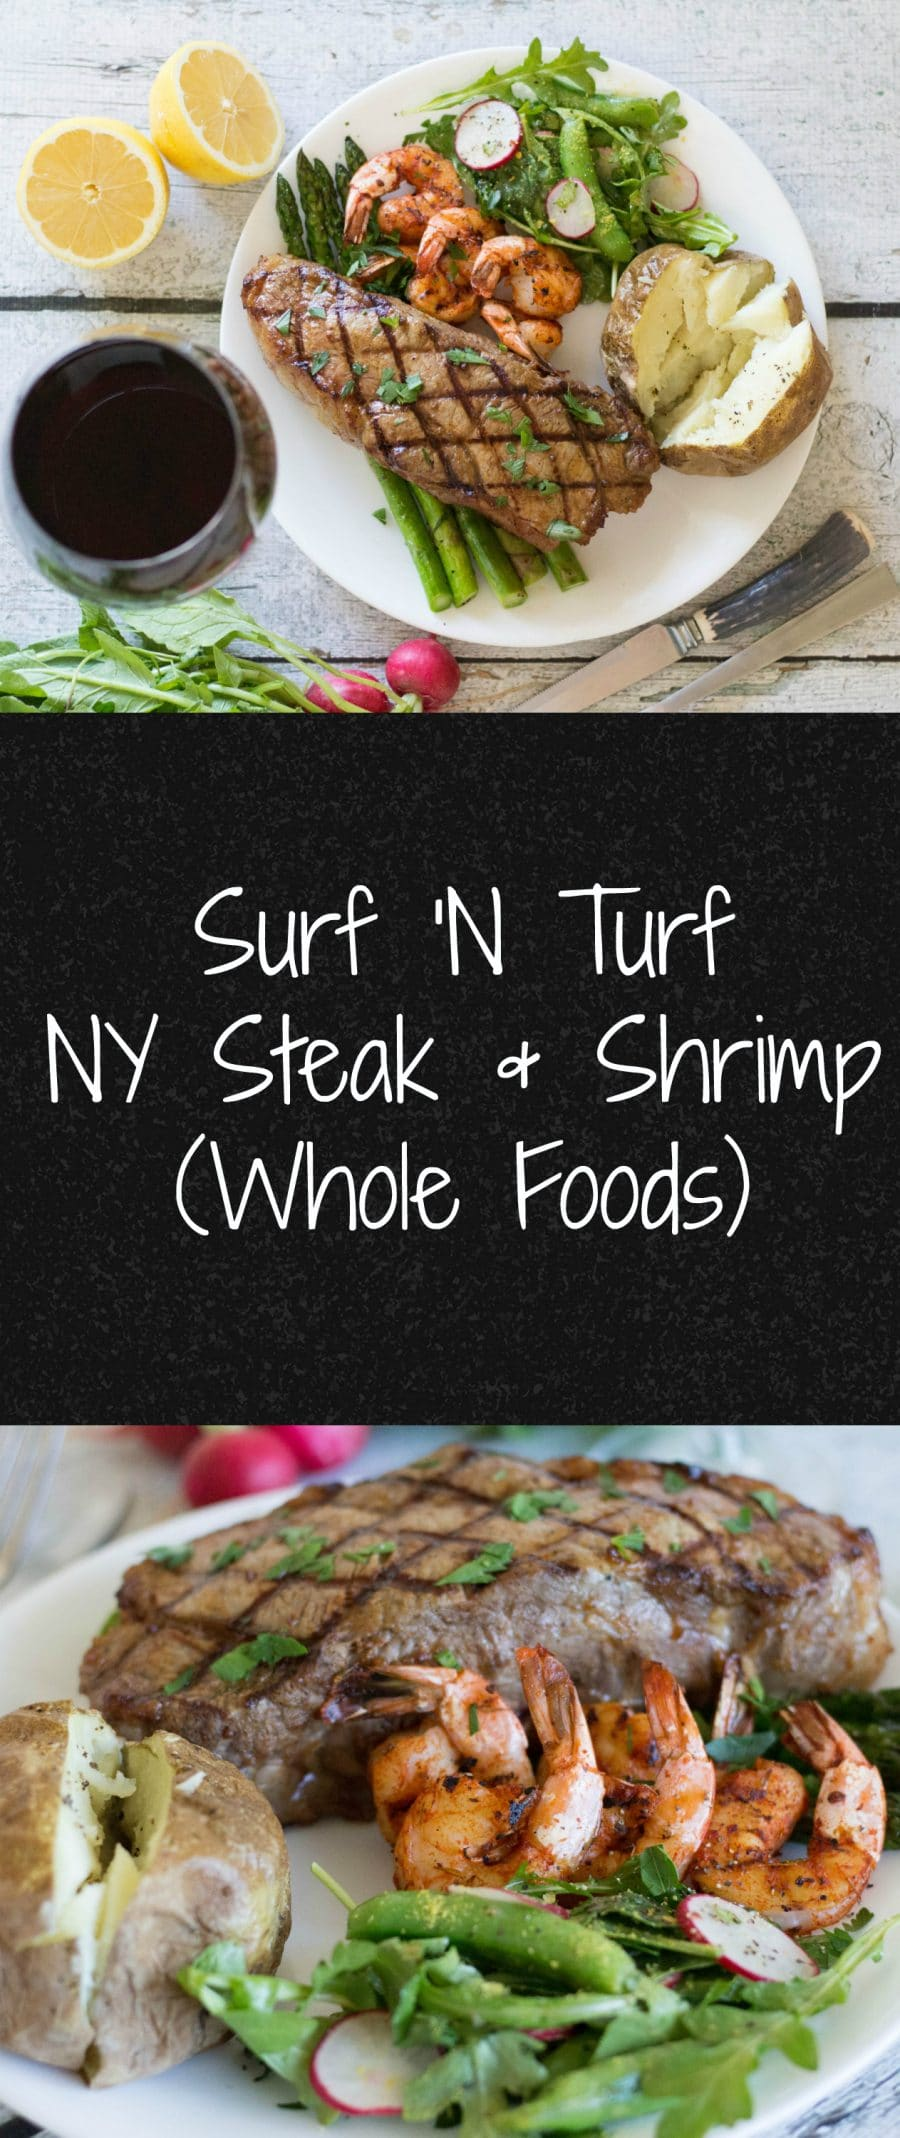 Whole Foods Market sets you up for Grilling Season! Try out this Surf 'N Turf recipe for Father's Day weekend! |Krollskorner.com